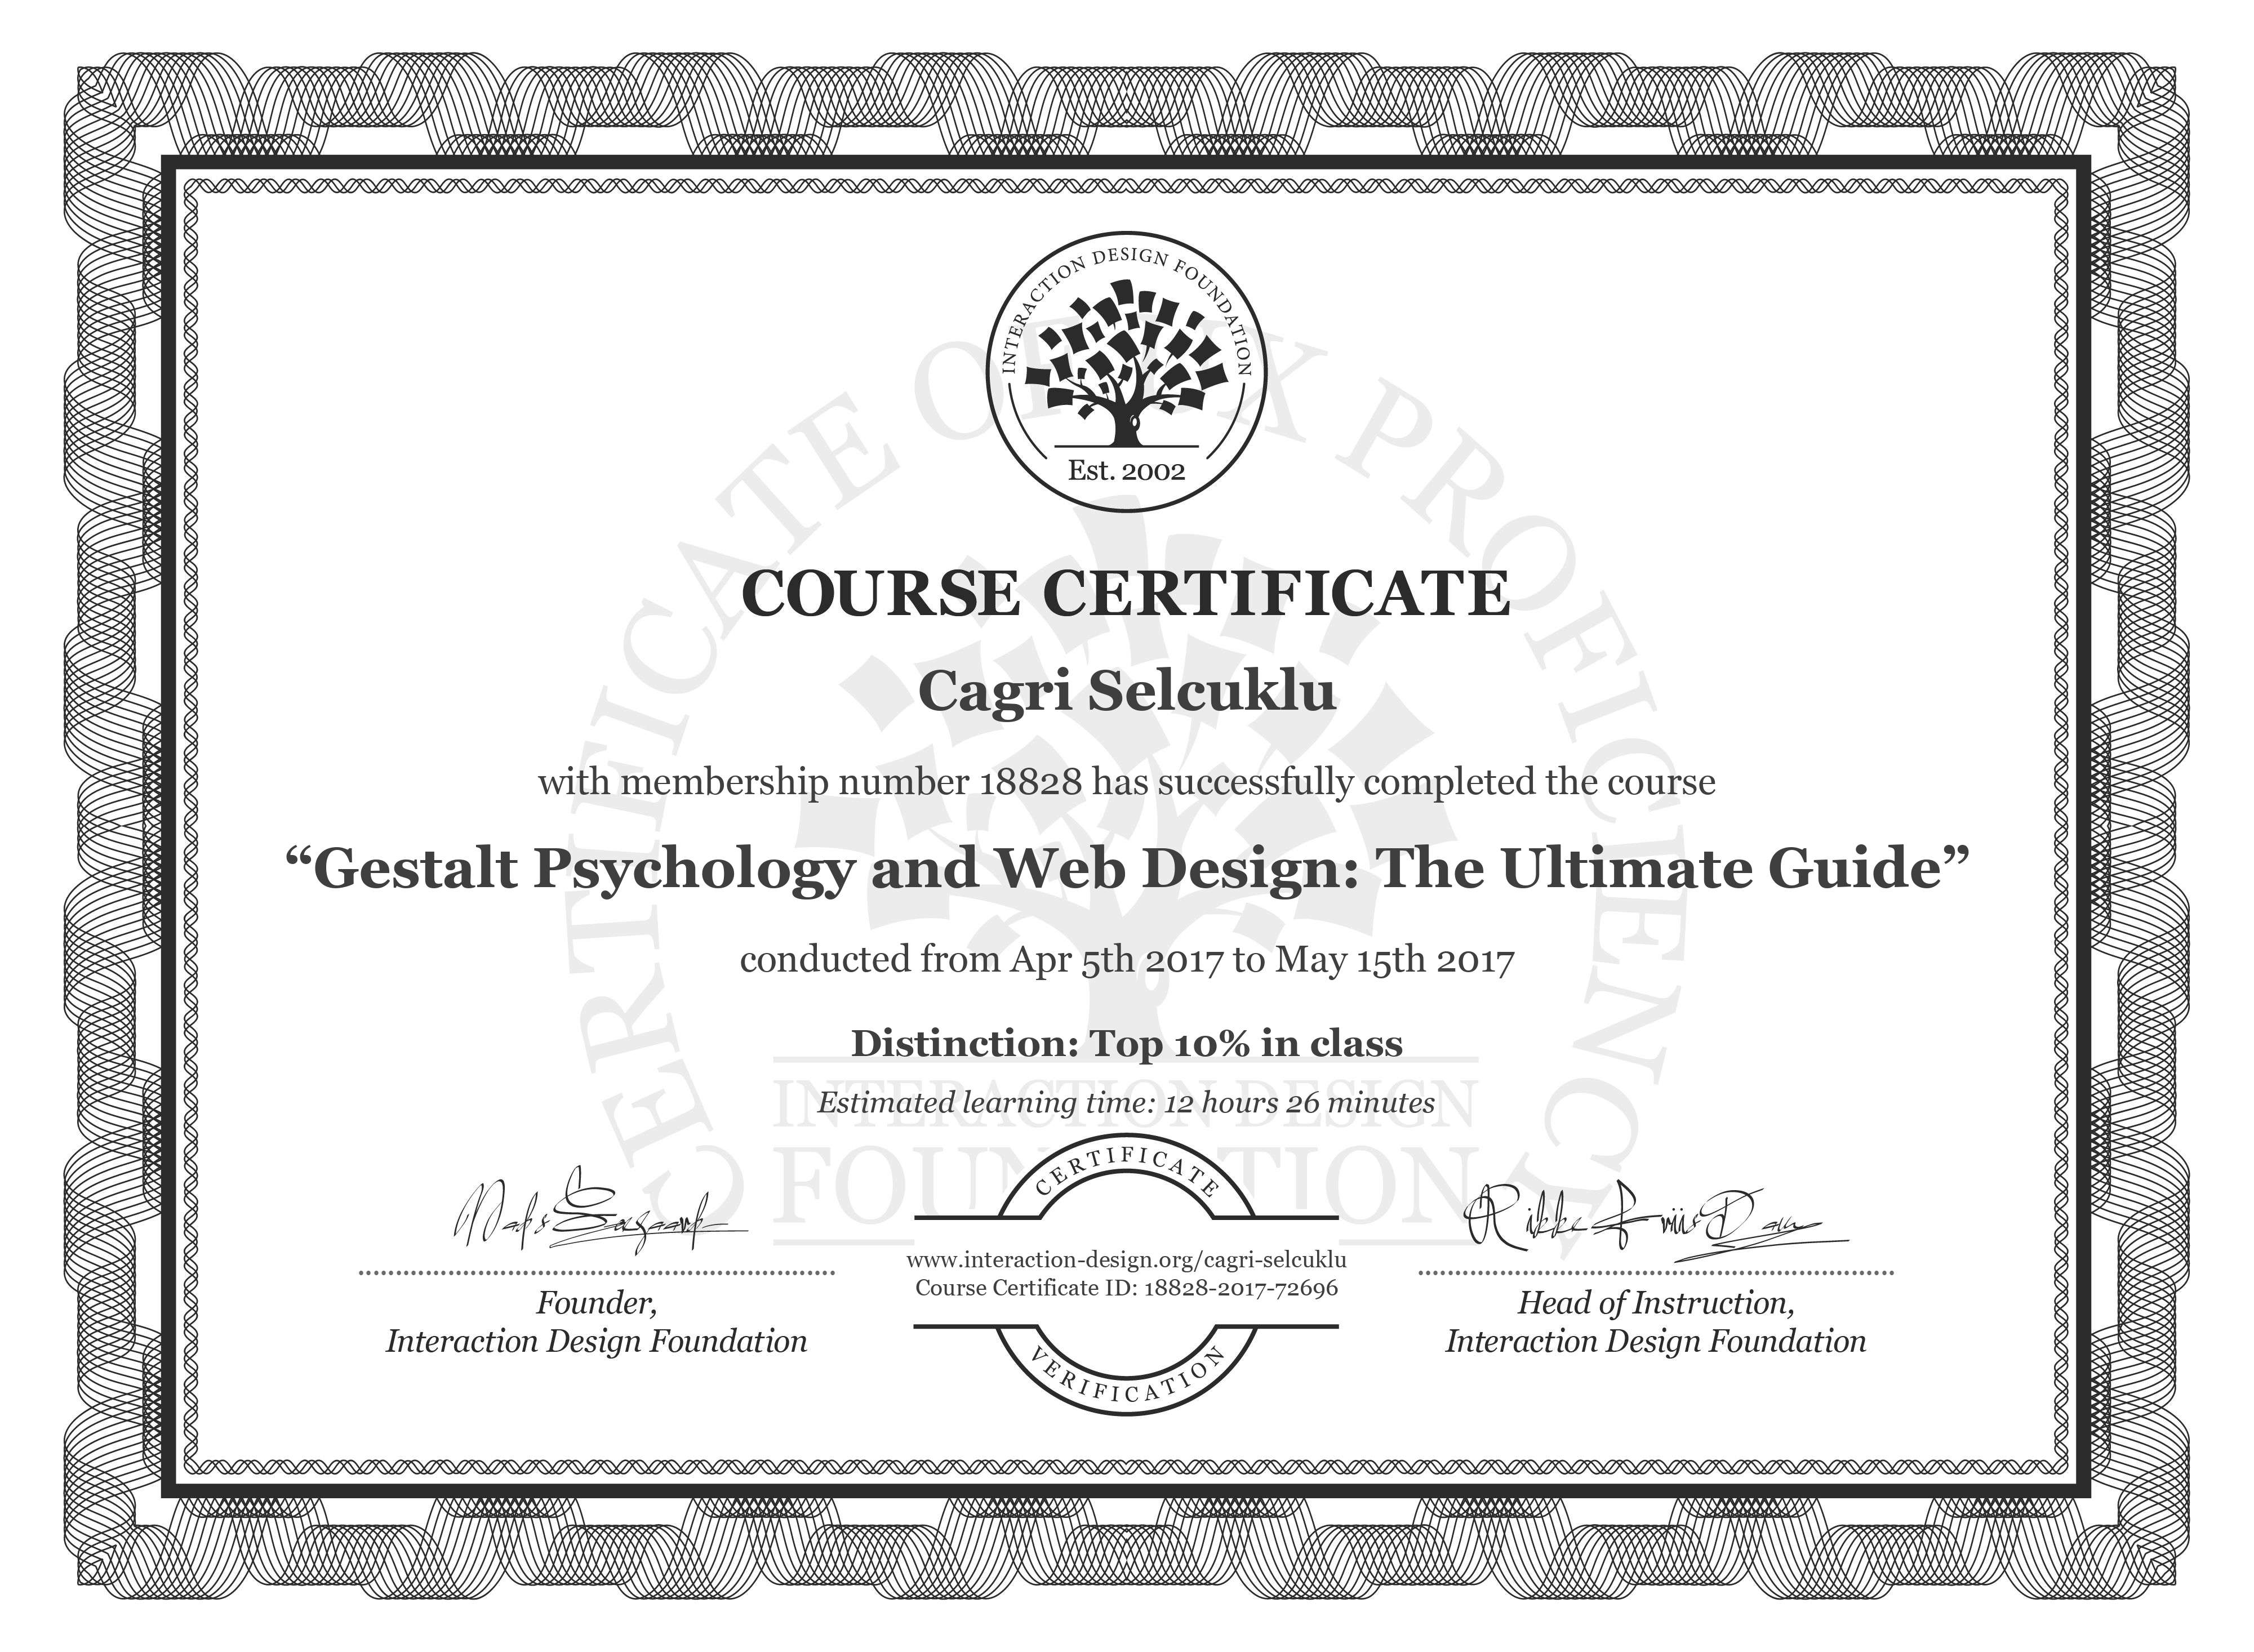 Cagri Selcuklu: Course Certificate - Gestalt Psychology and Web Design: The Ultimate Guide